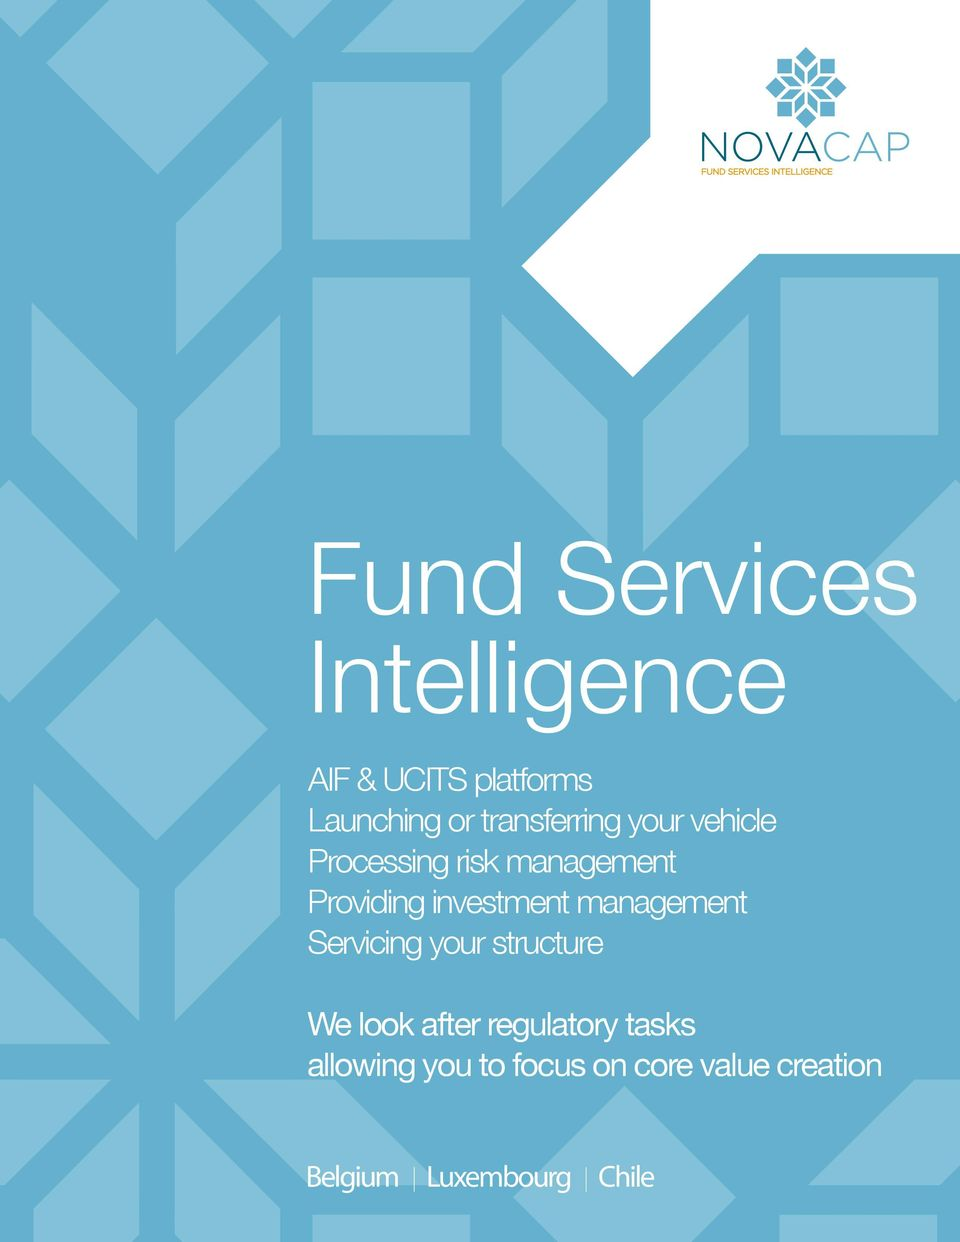 investment management Servicing your structure We look after